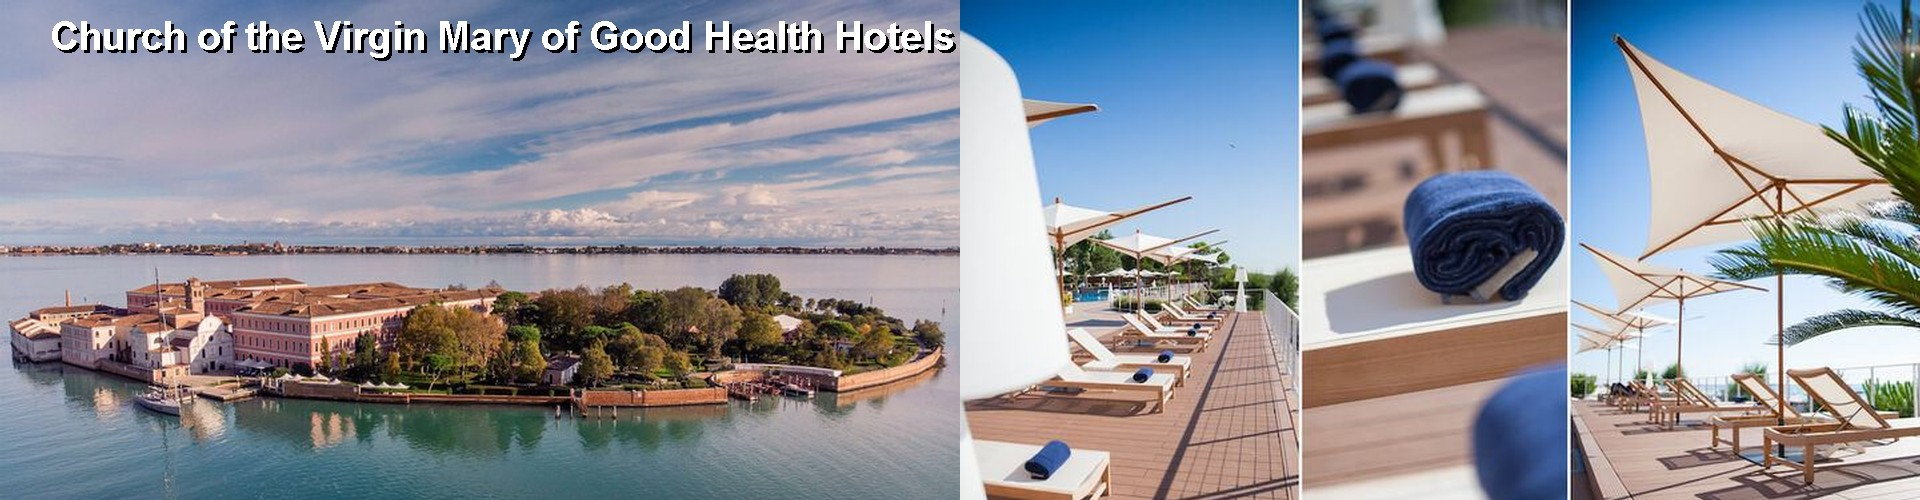 5 Best Hotels near Church of the Virgin Mary of Good Health